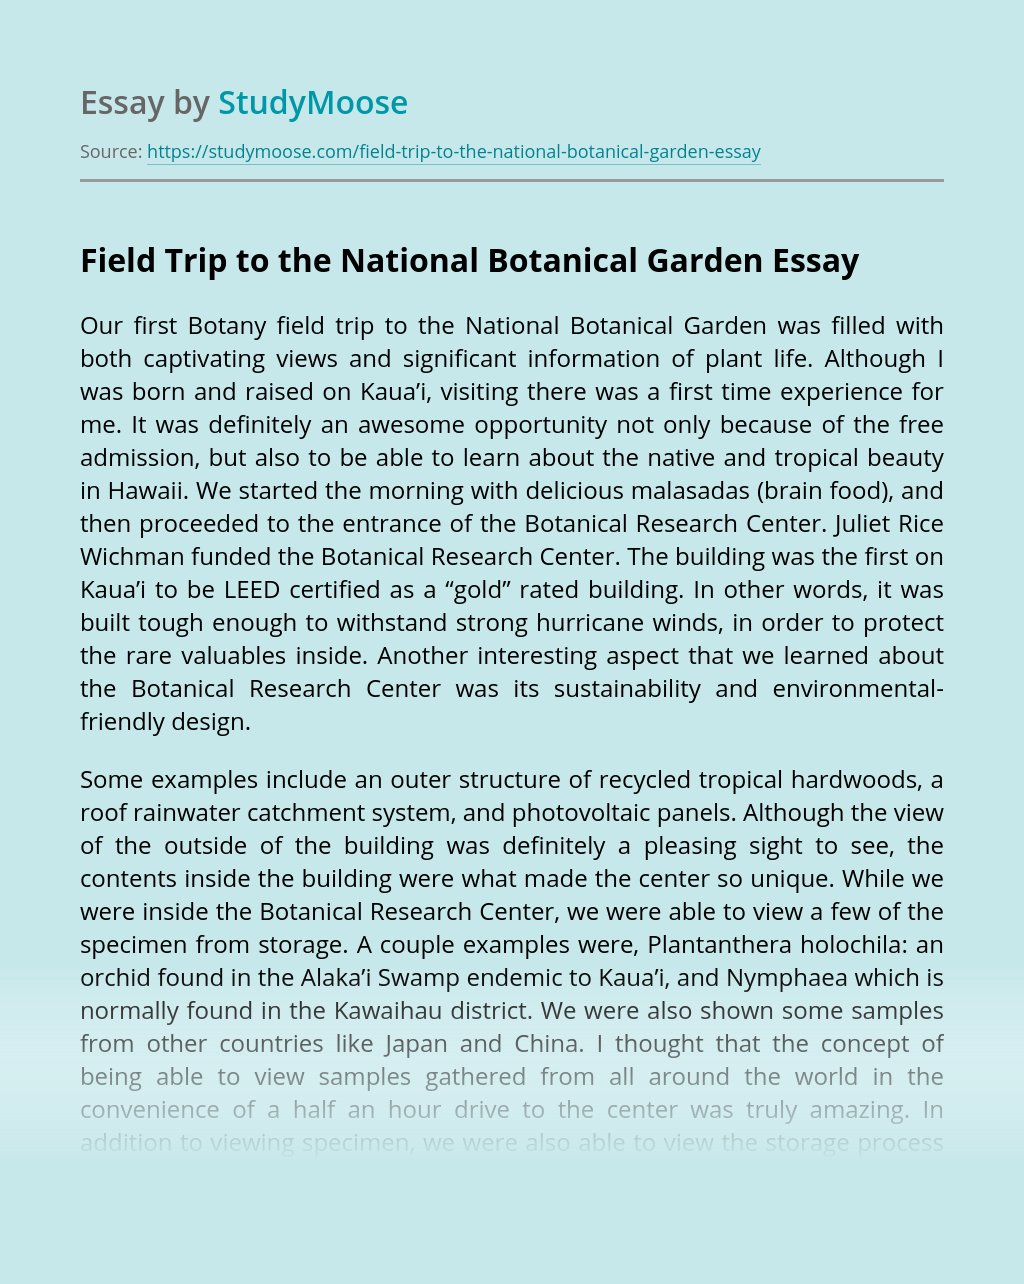 Field Trip to the National Botanical Garden